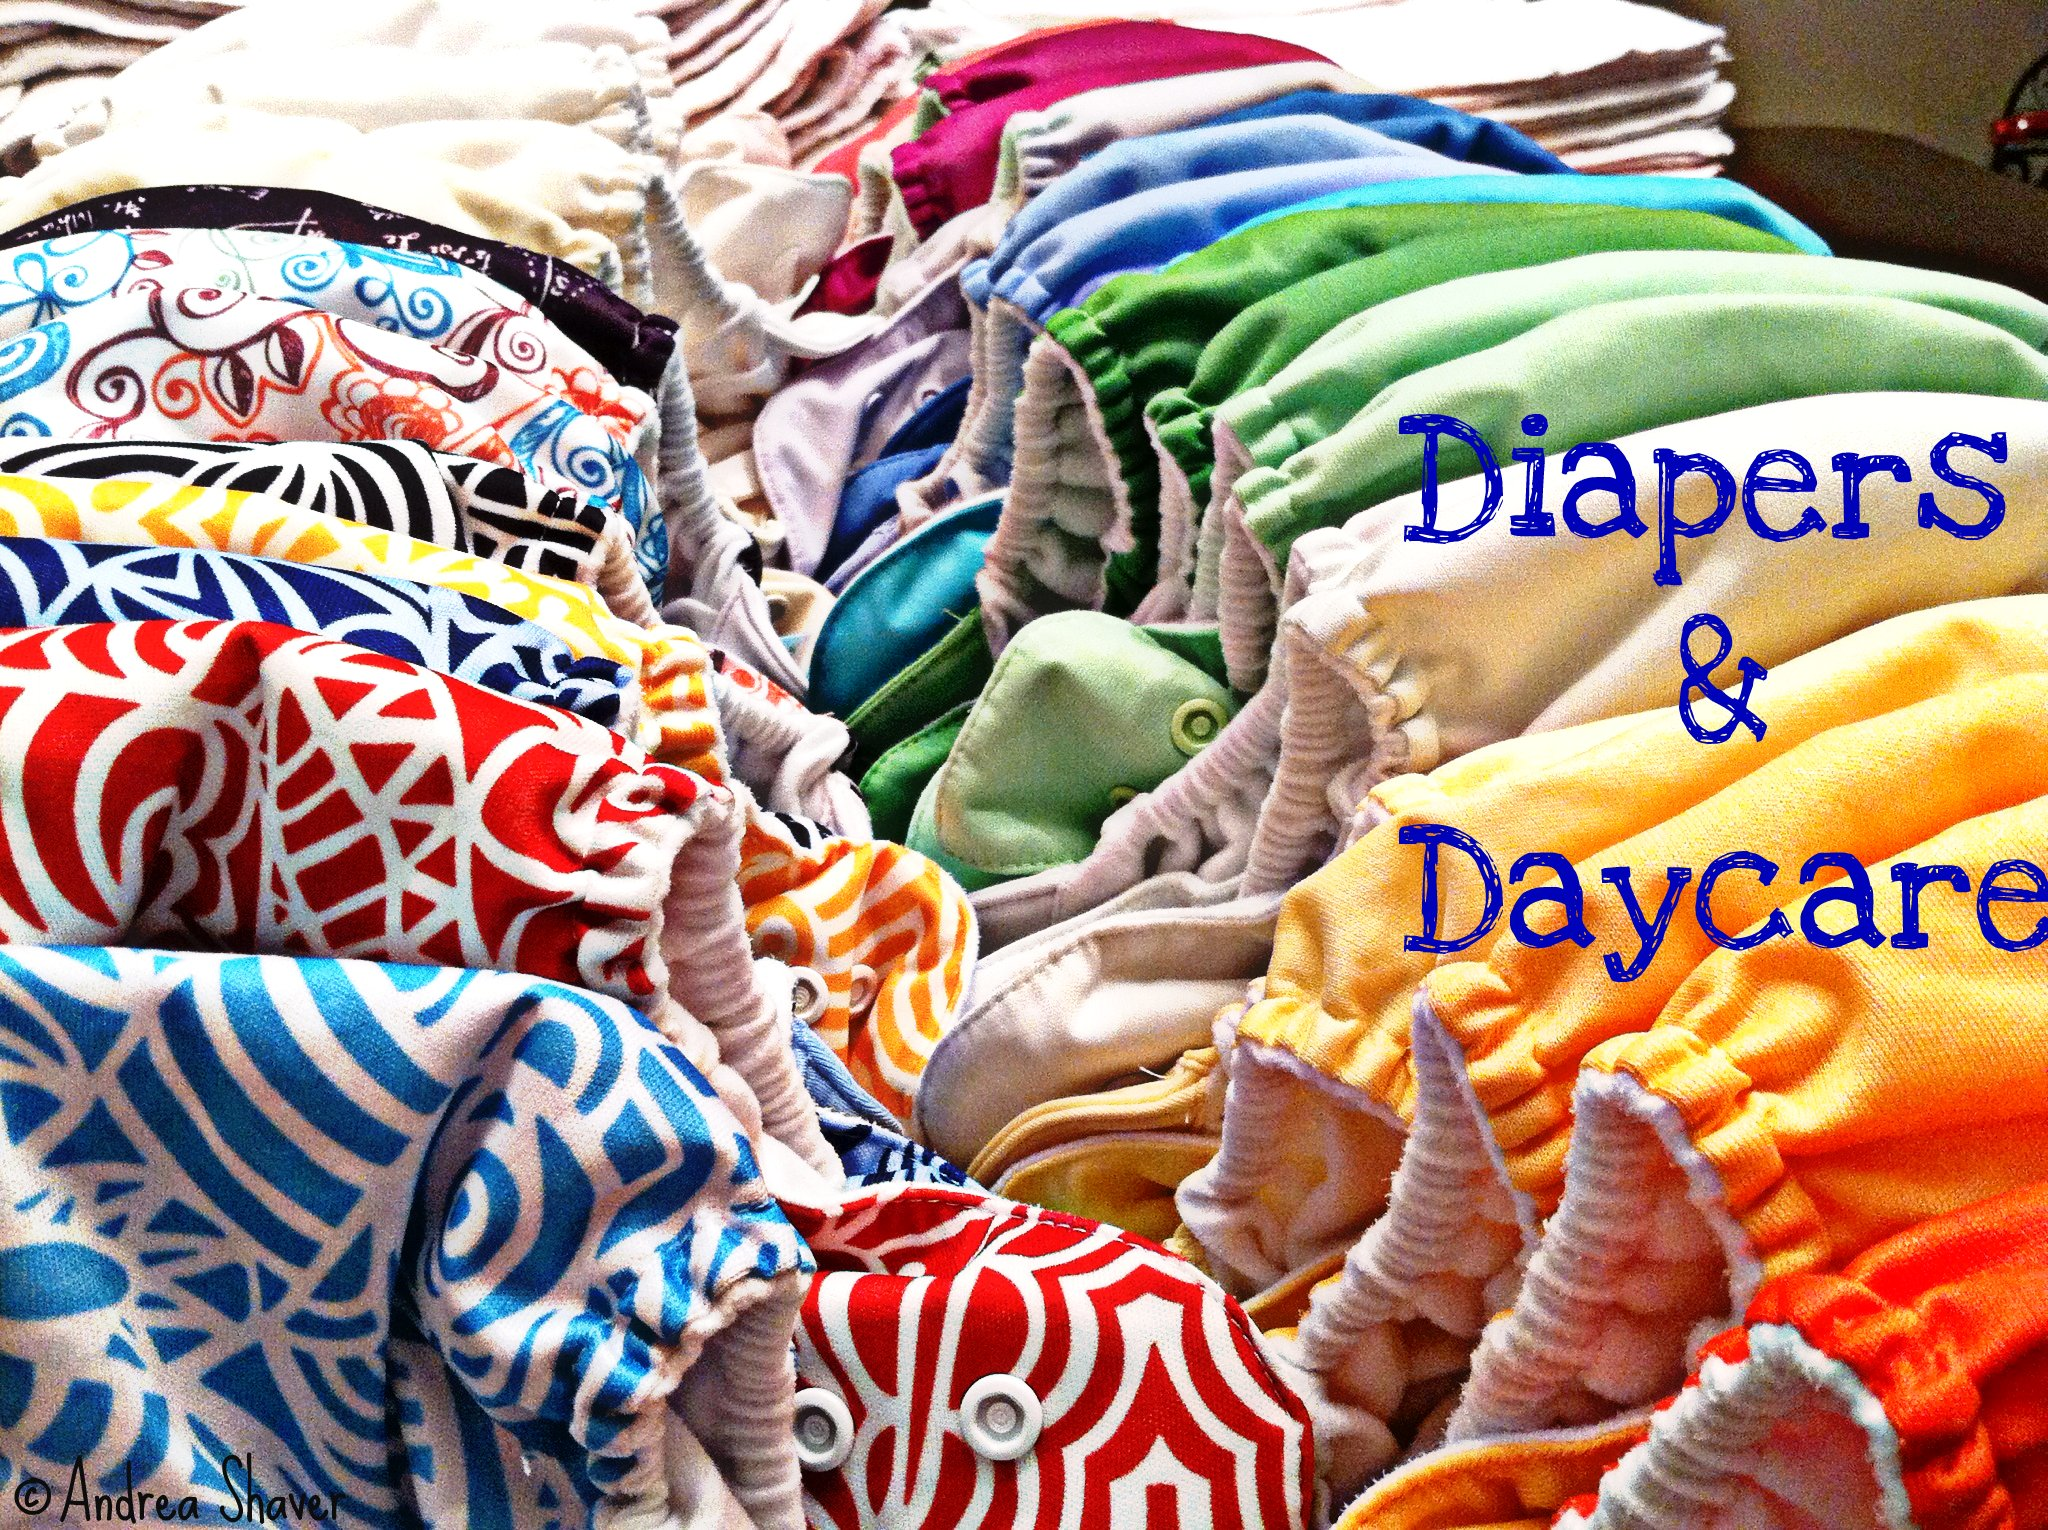 diapers-2